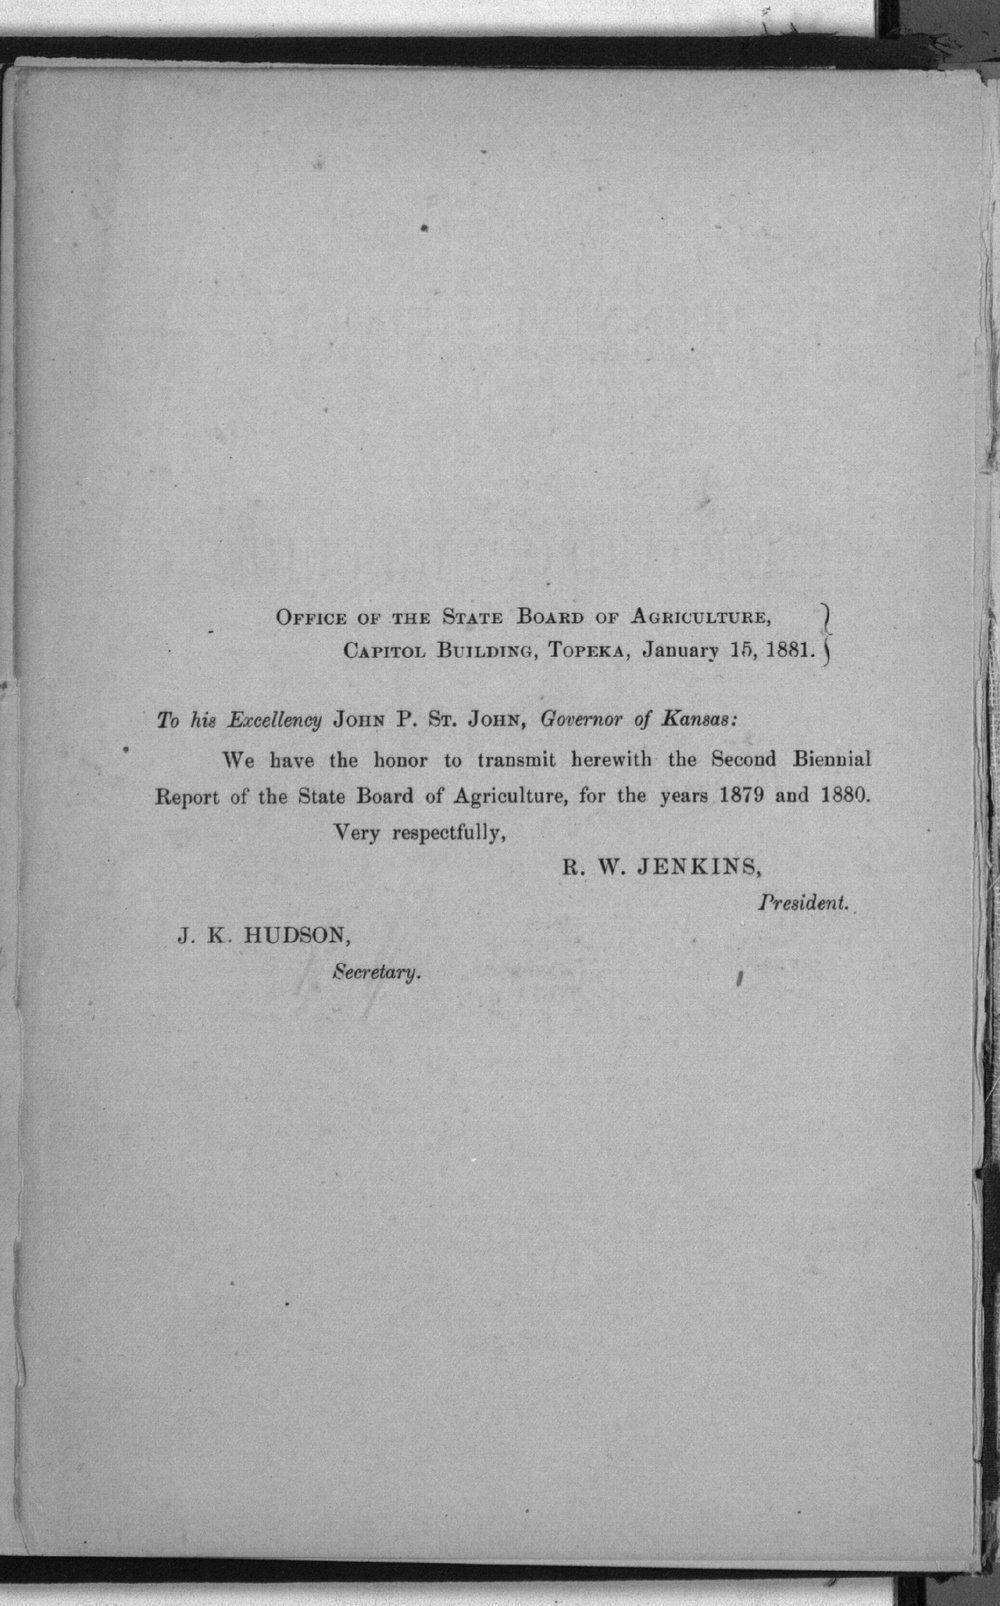 Second biennial report of the Kansas State Board of Agriculture, 1879-80 - Transmittal